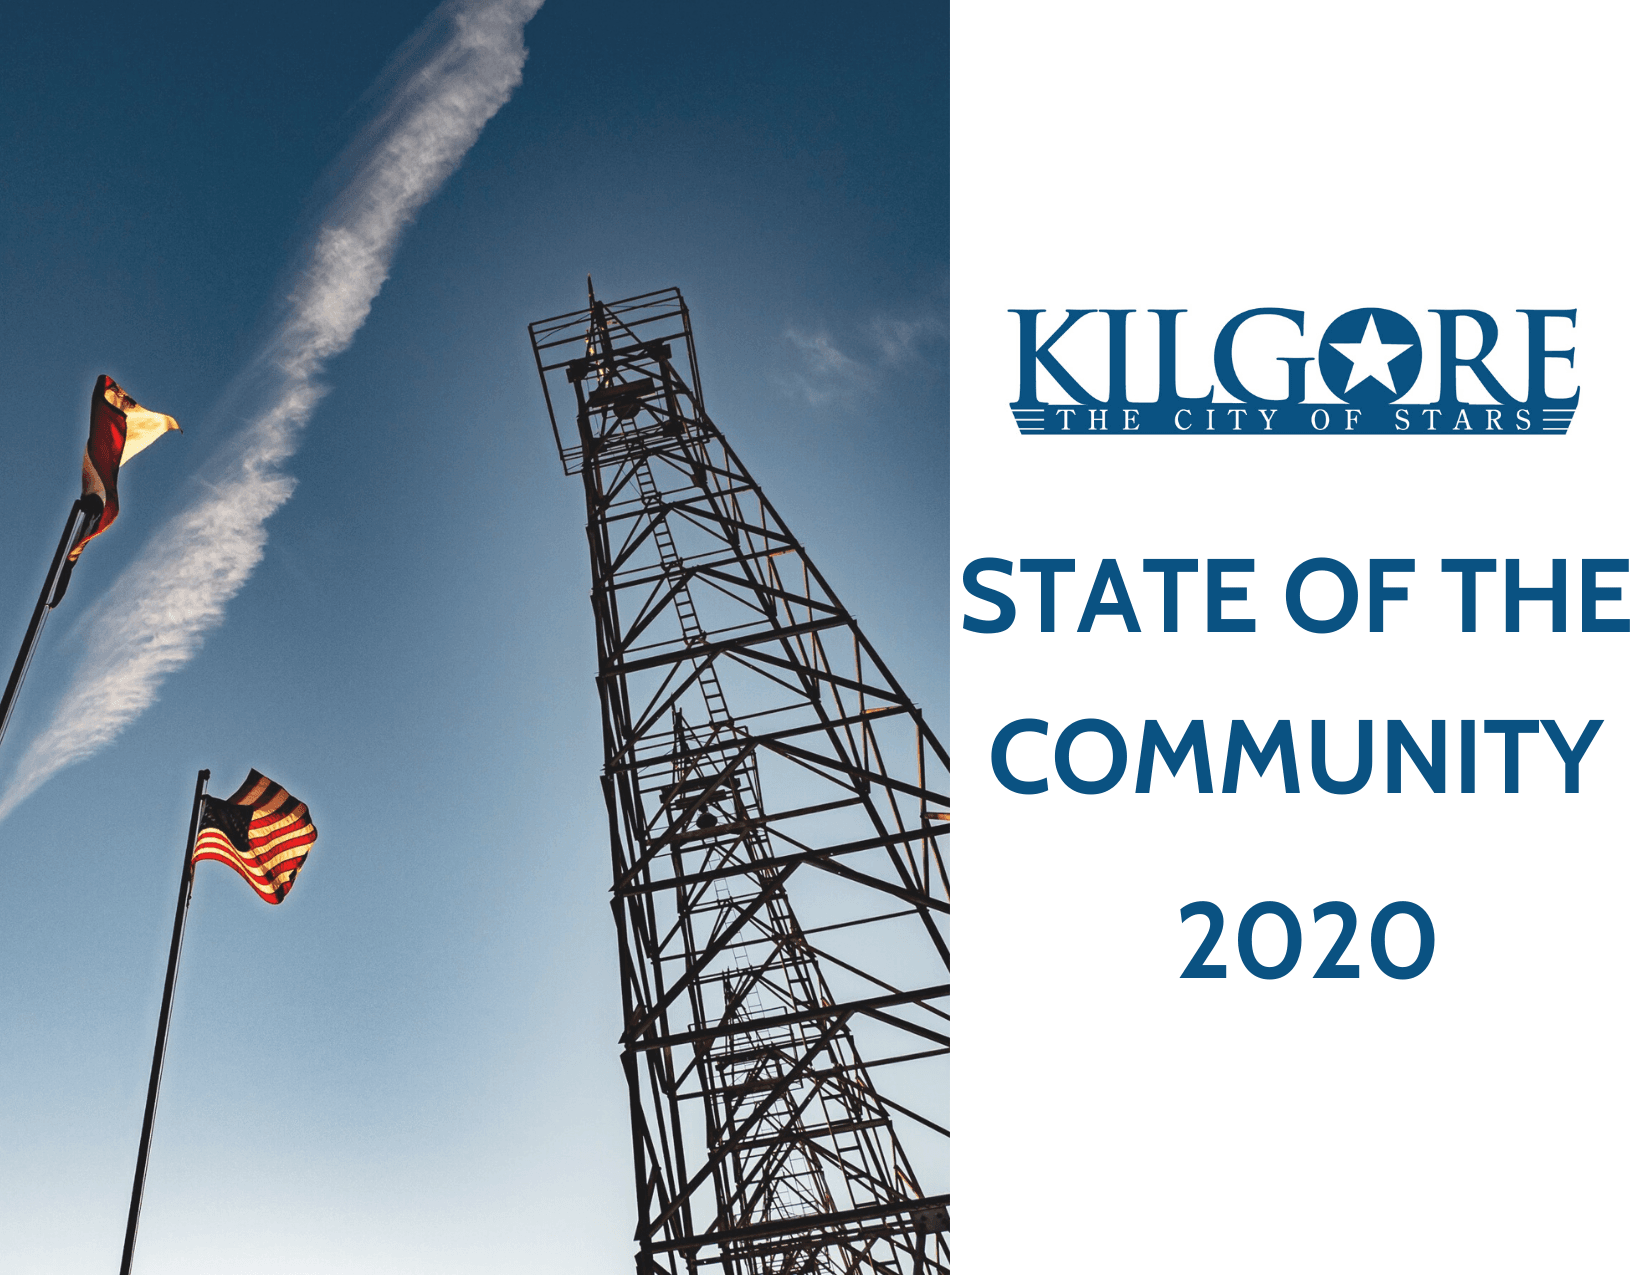 STATE OF THE COMMUNITY KILGORE 2020